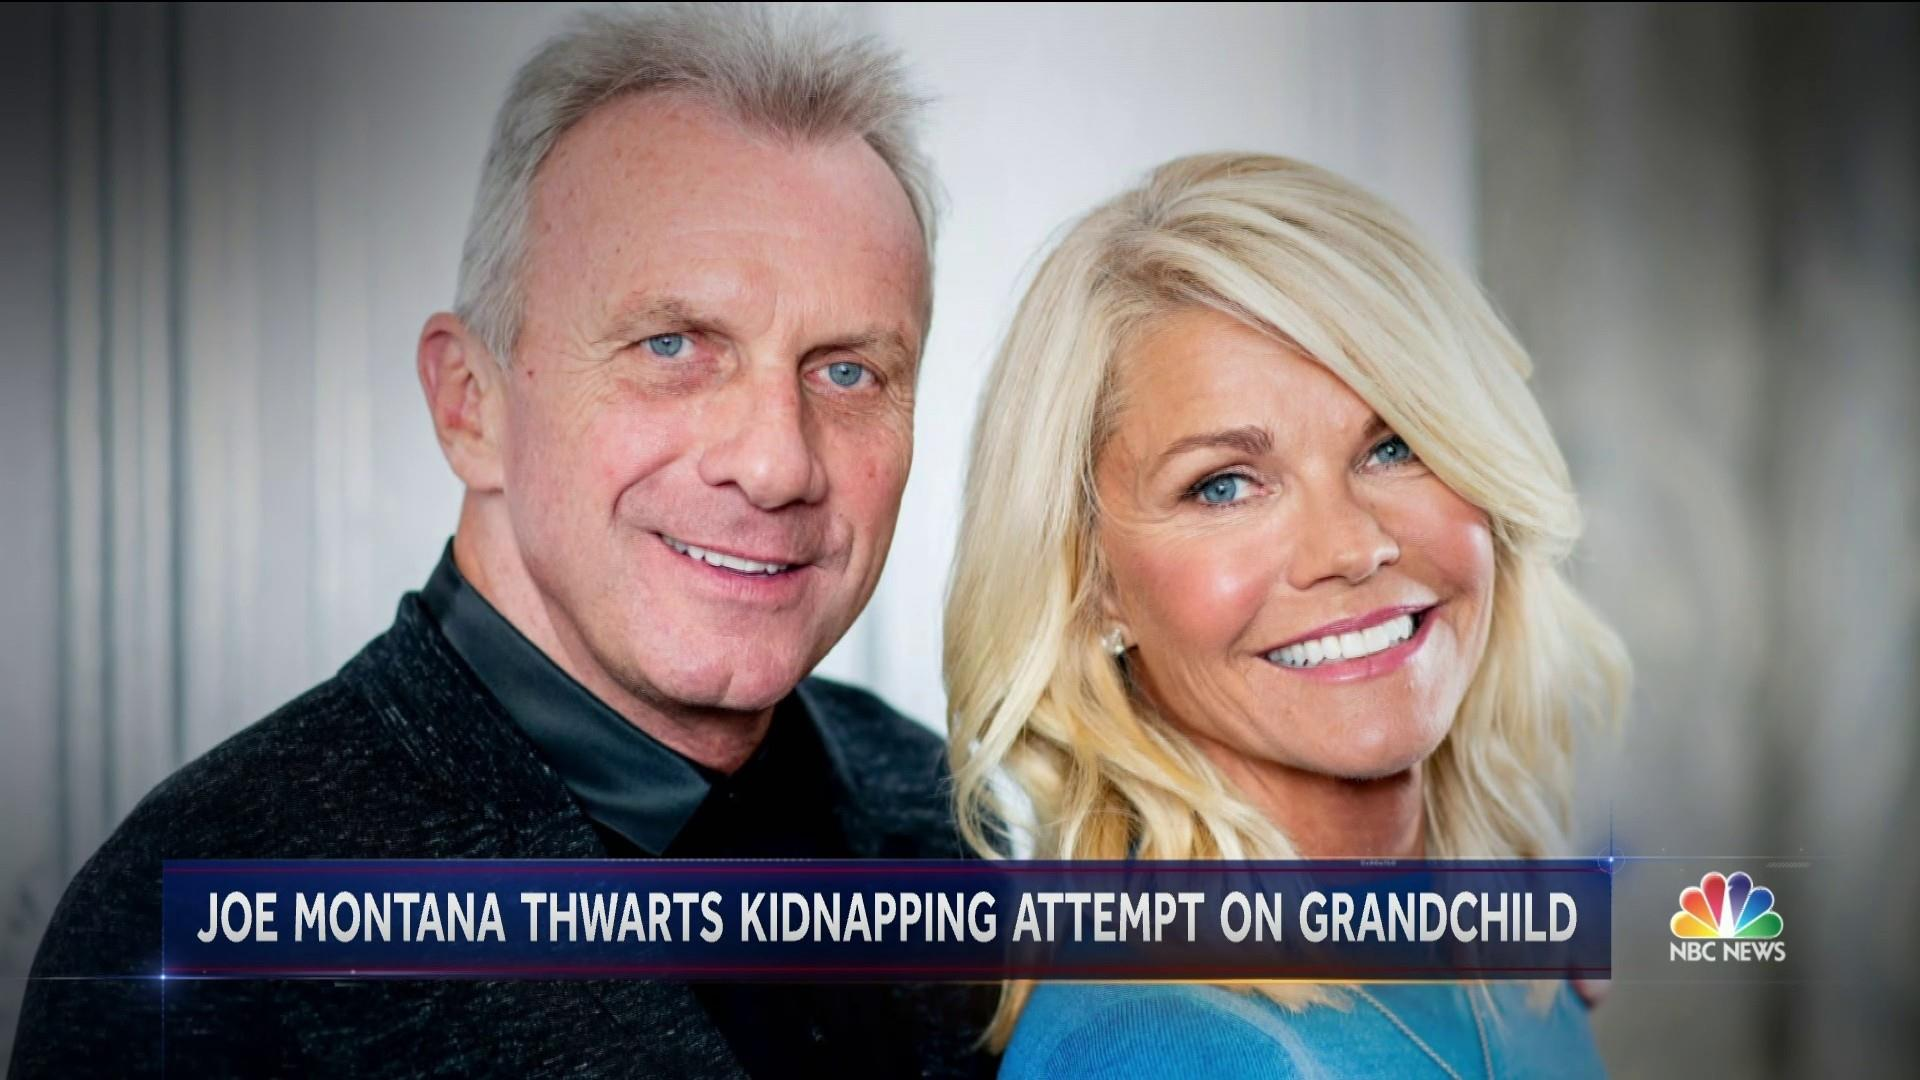 Joe Montana and wife rescue grandchild from attempted kidnapping